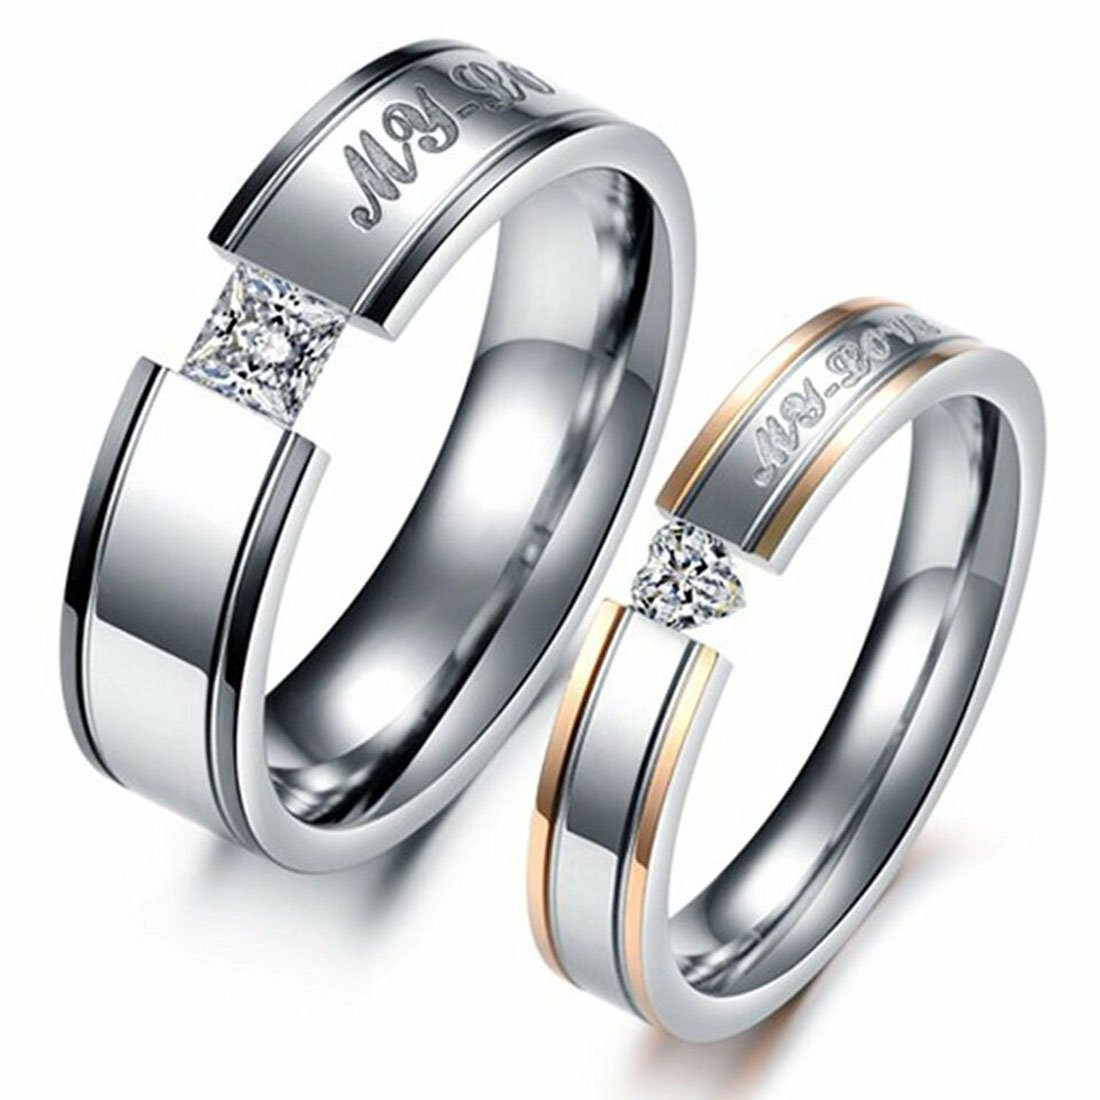 LAVUMO Him Her Couple Rings Stainless Steel Anniversary Engagement Promise Wedding Band My Love CZ (Men 9 & Women 9)